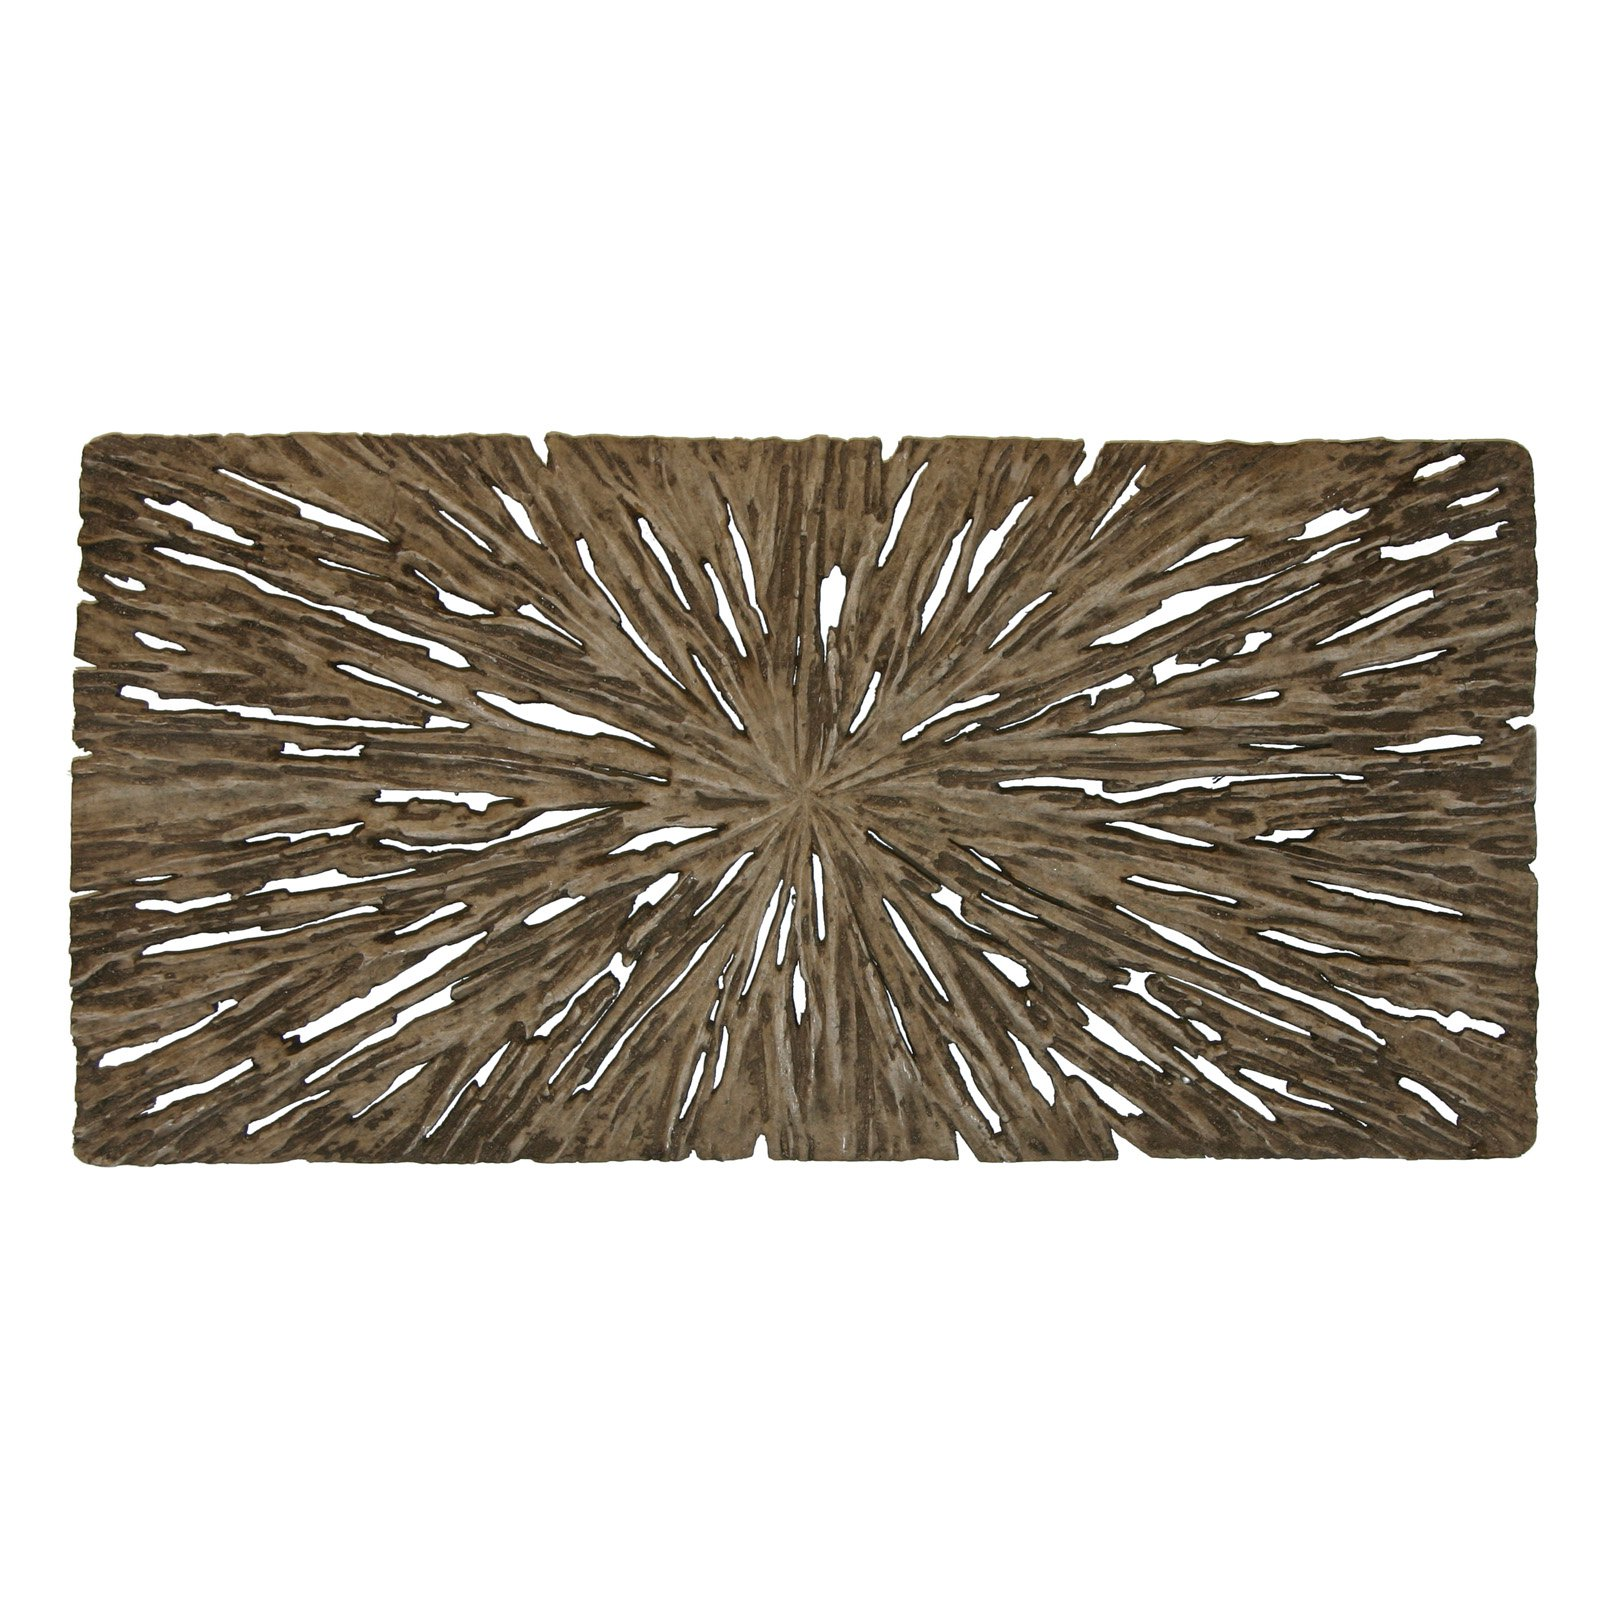 Long Rectangle Rotten Wood Wall Art - Set of 2